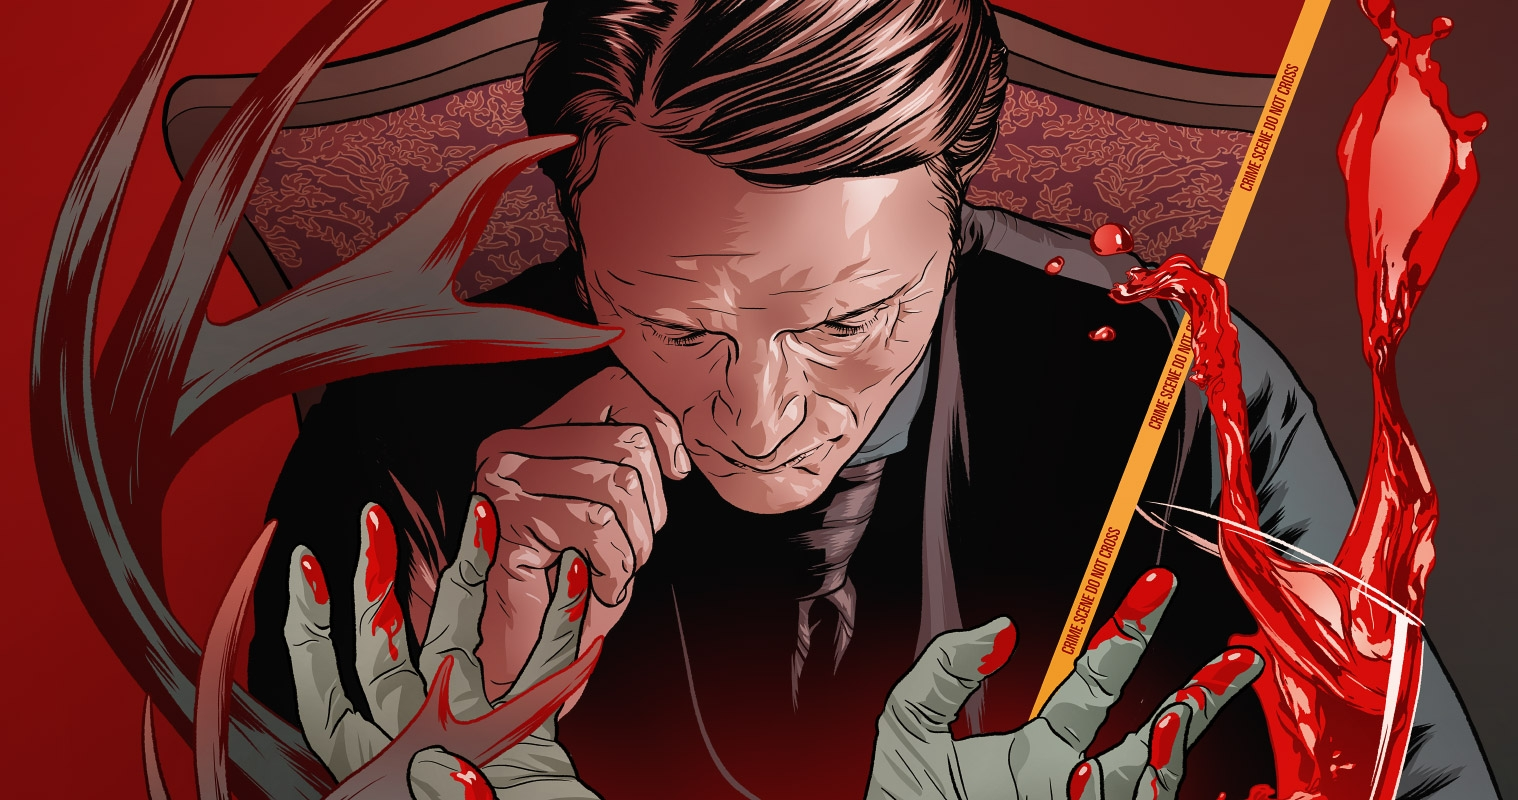 http://martinansin.com/files/gimgs/th-28_Hannibal-02.jpg